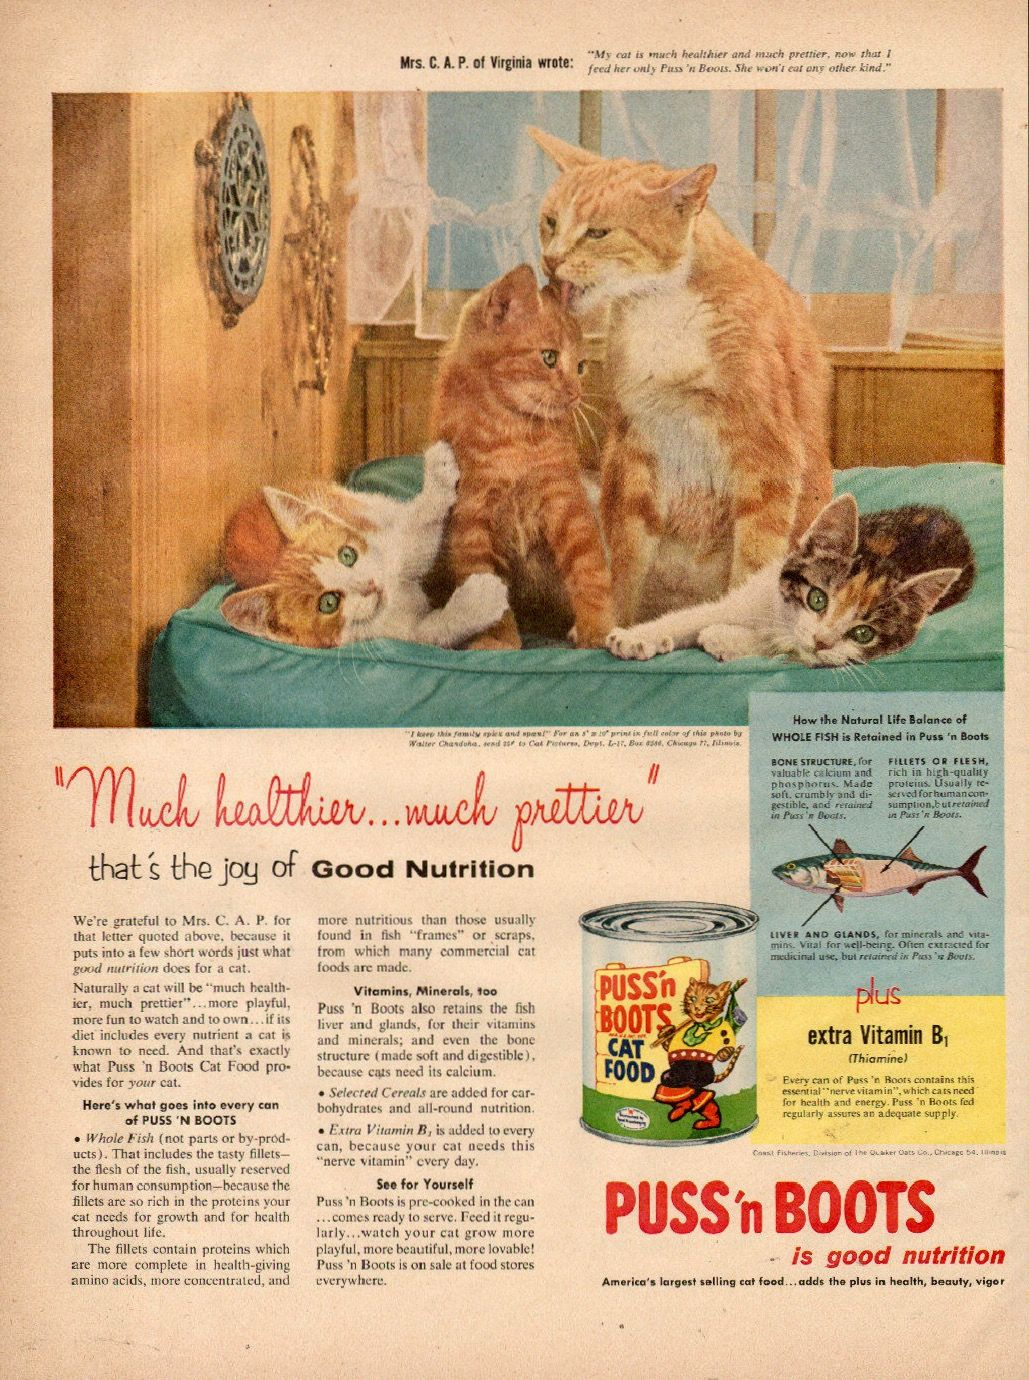 Pin By Melissia Stark On Cats In Advertising Funny Vintage Ads Retro Ads Vintage Ads